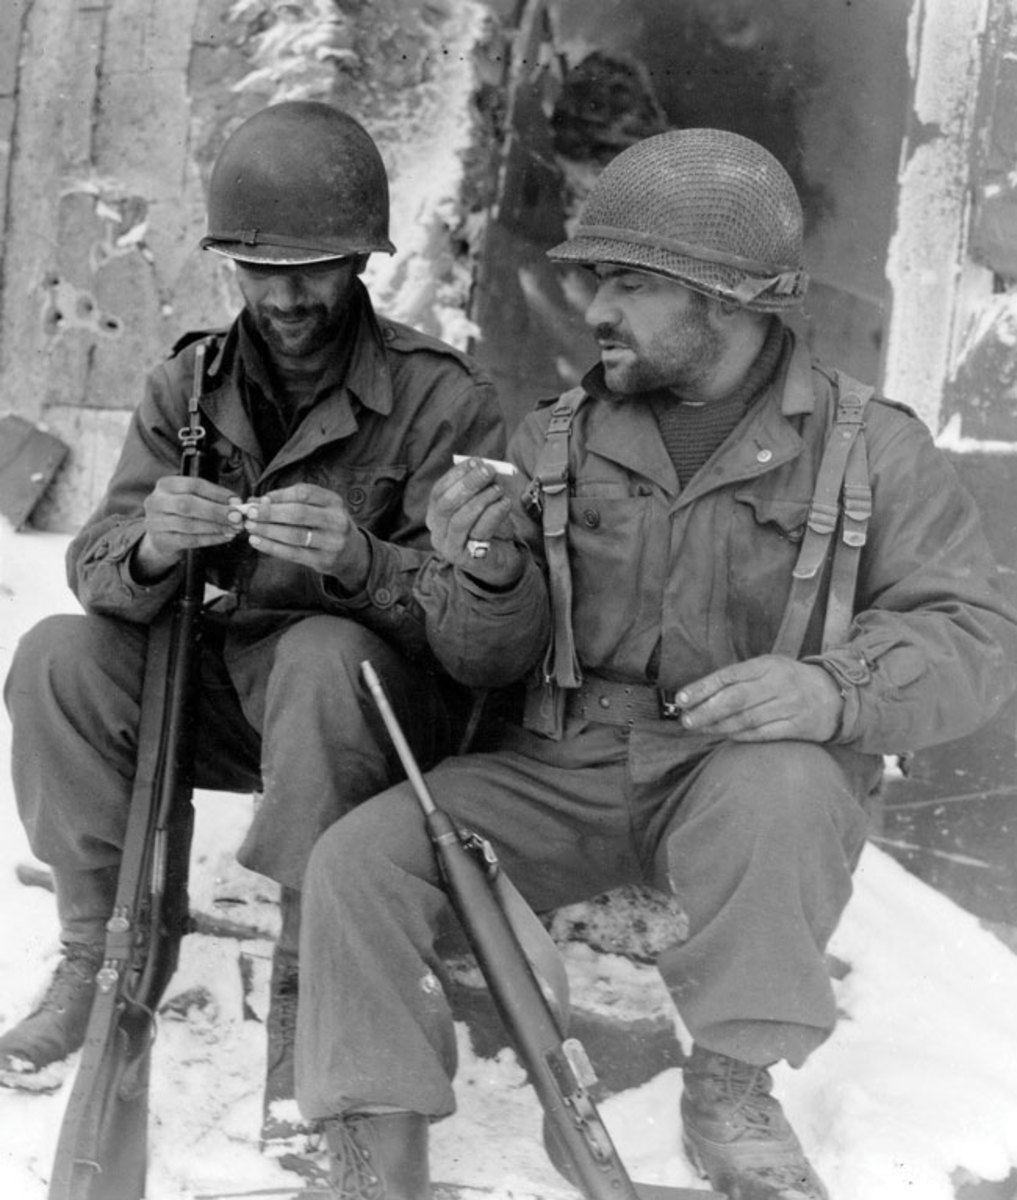 WWII Signal Corps photo showing two GIs wearing the M1 helmets on a smoke break during WWII . The soldier on the right wears a helmet with a late model helmet net and elastic foliage band while the helmet on the soldier on the left exhibits common paint loss to the helmet rim.